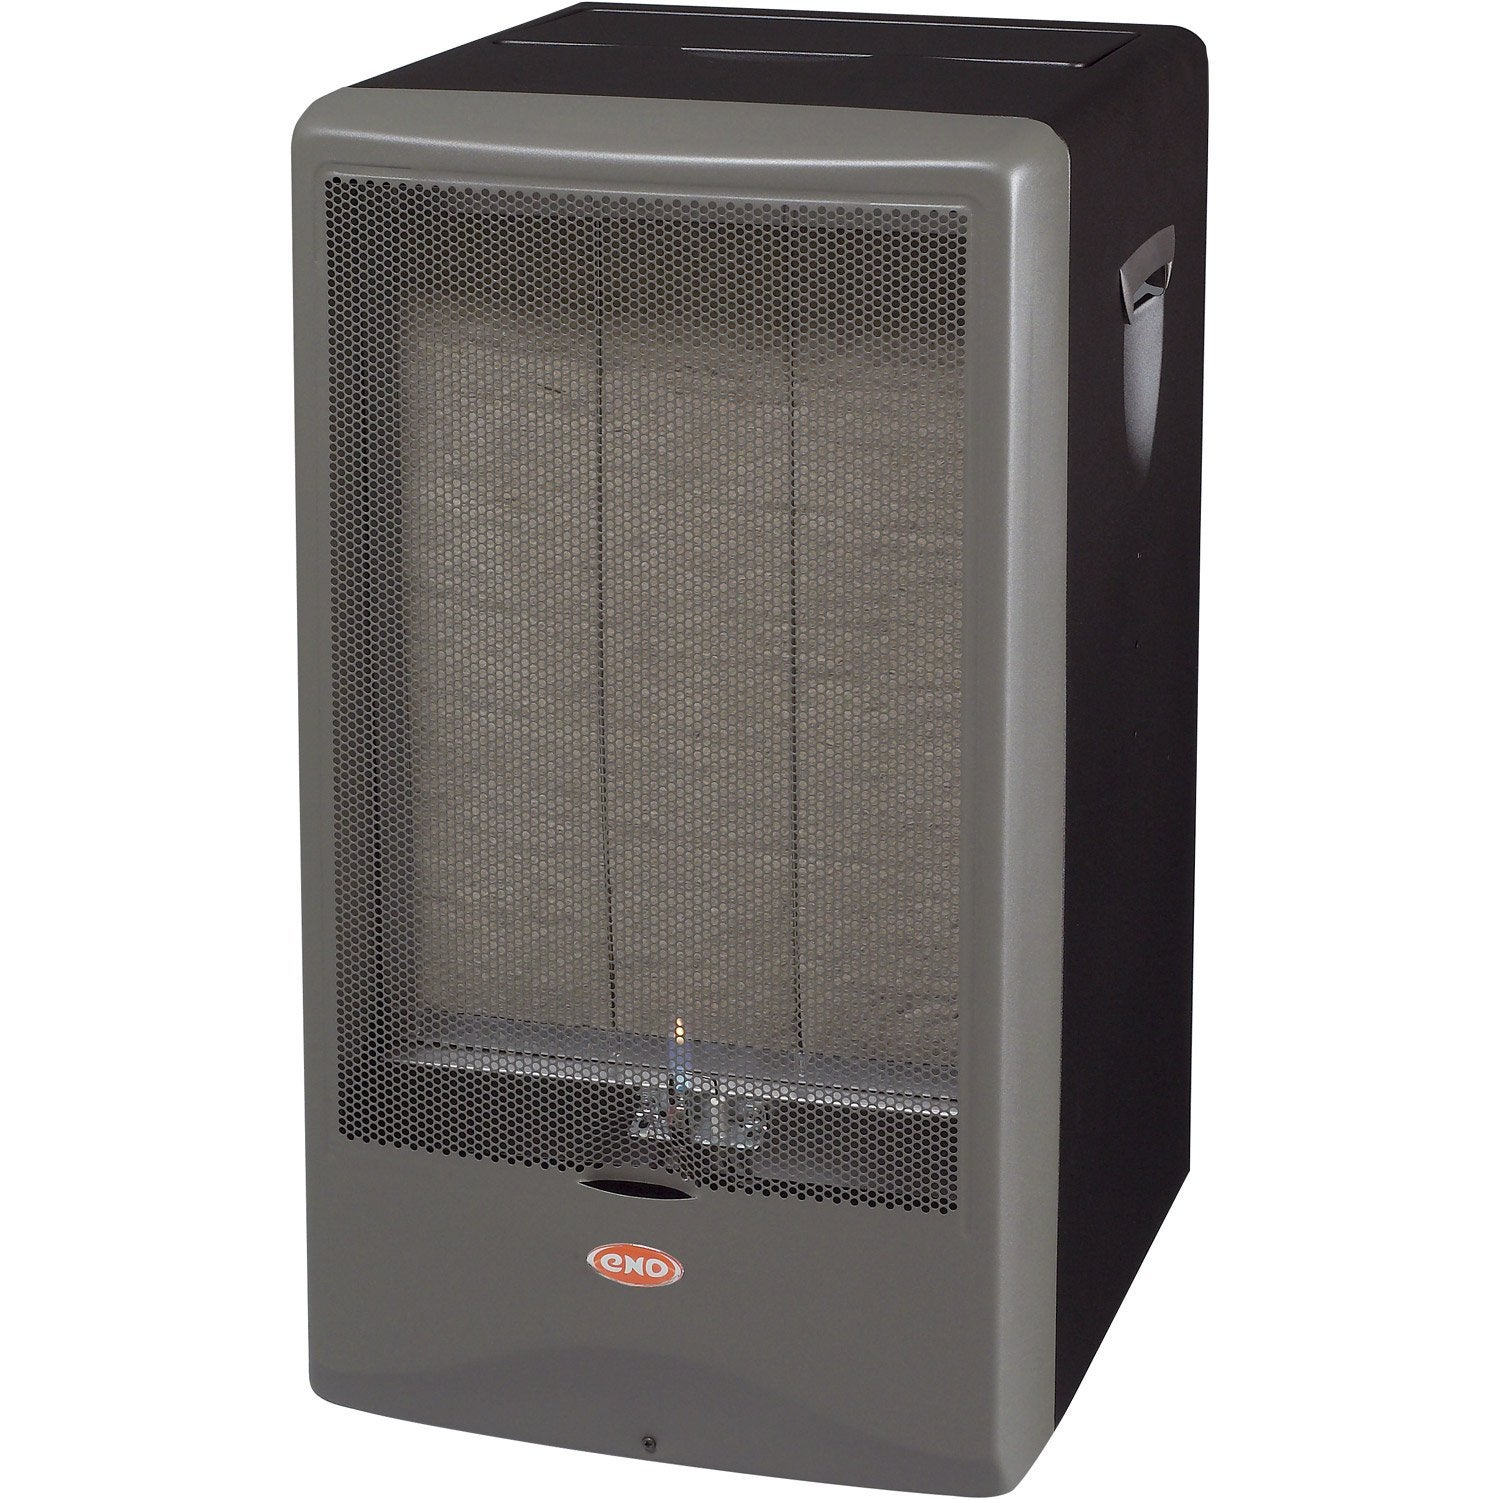 chauffage gaz catalyse eno 3070 noir therm 2 8 kw leroy merlin. Black Bedroom Furniture Sets. Home Design Ideas